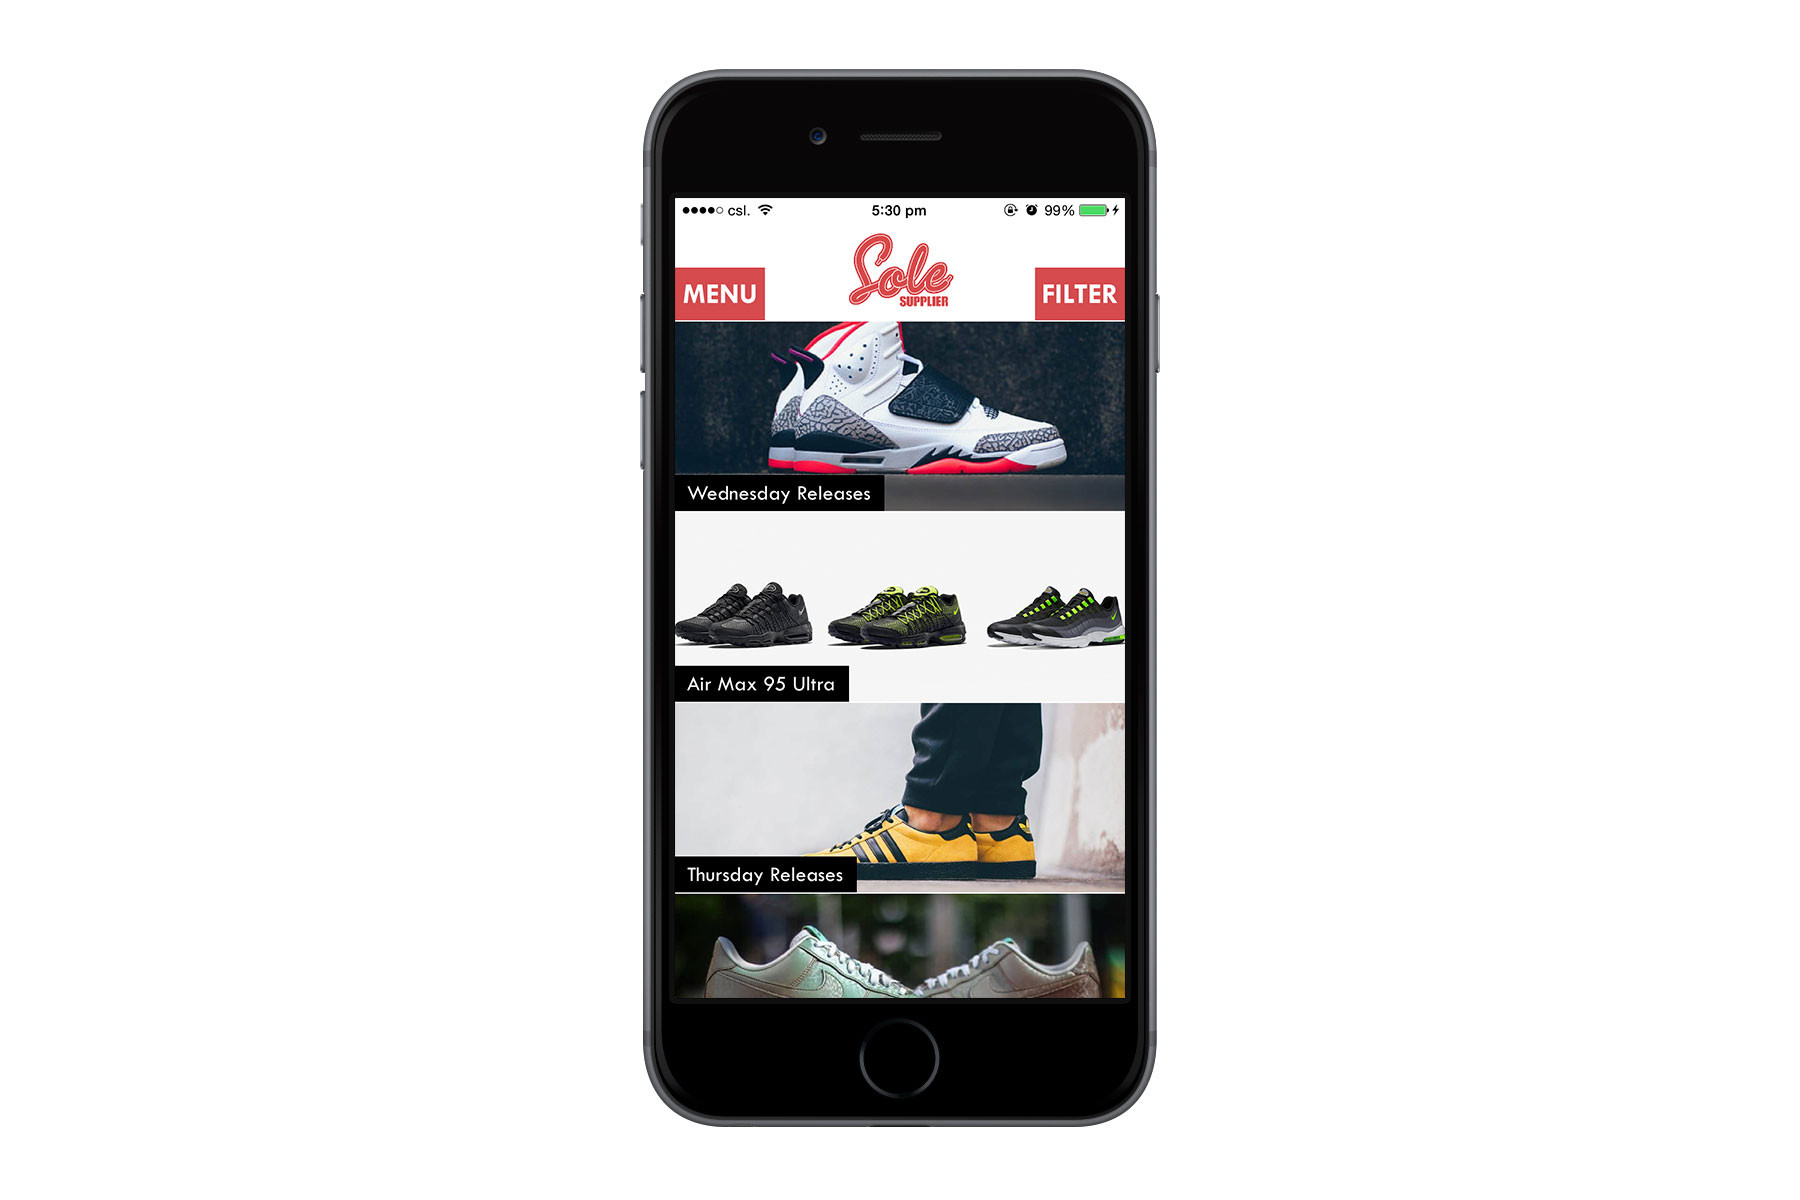 6 Pay For Sneakers From Your iPhone